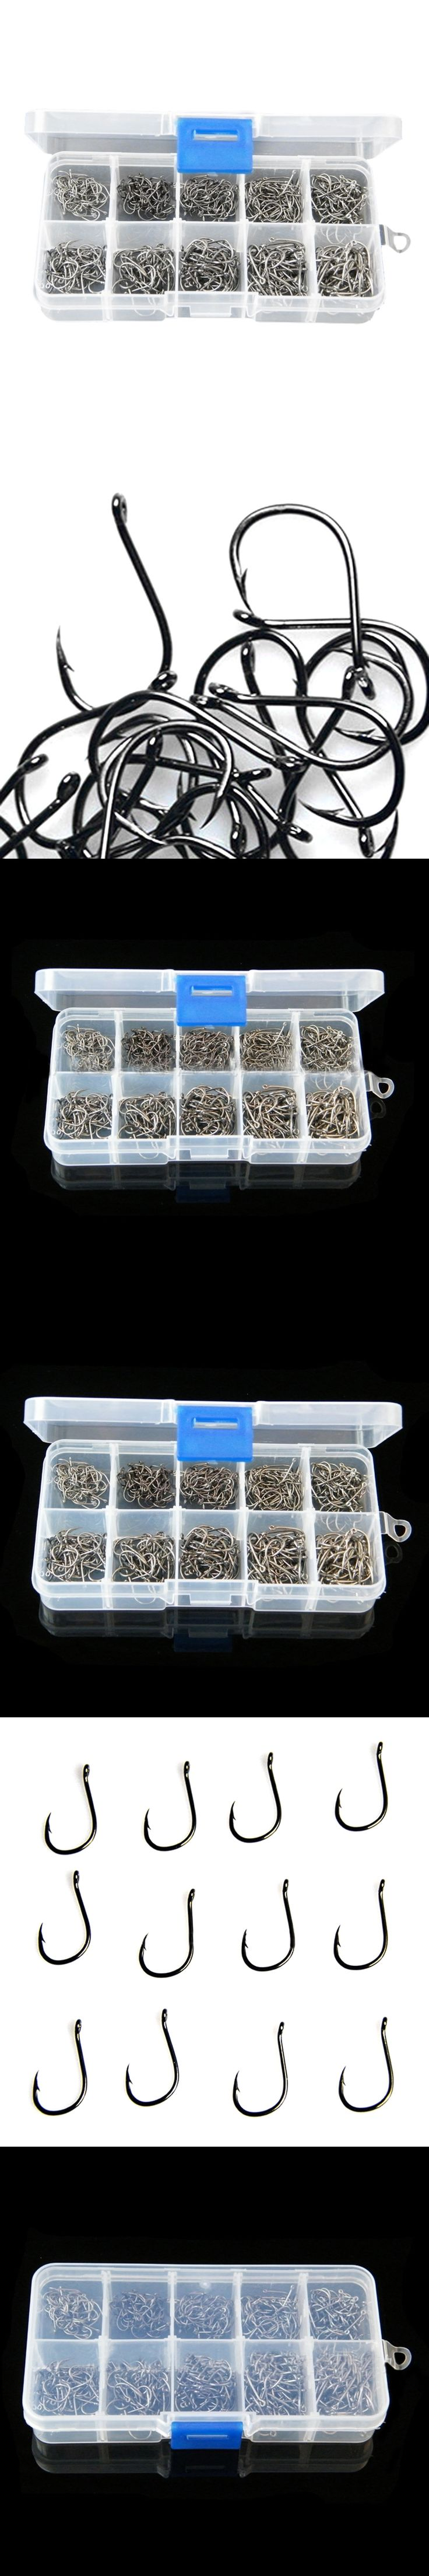 FZCSPEED Size #3-12 High Carbon Steel Circle Owner Fishing Hooks Set Freshwater Fishhook Sets Strong Fish Tackle Tool 500PCS/Box